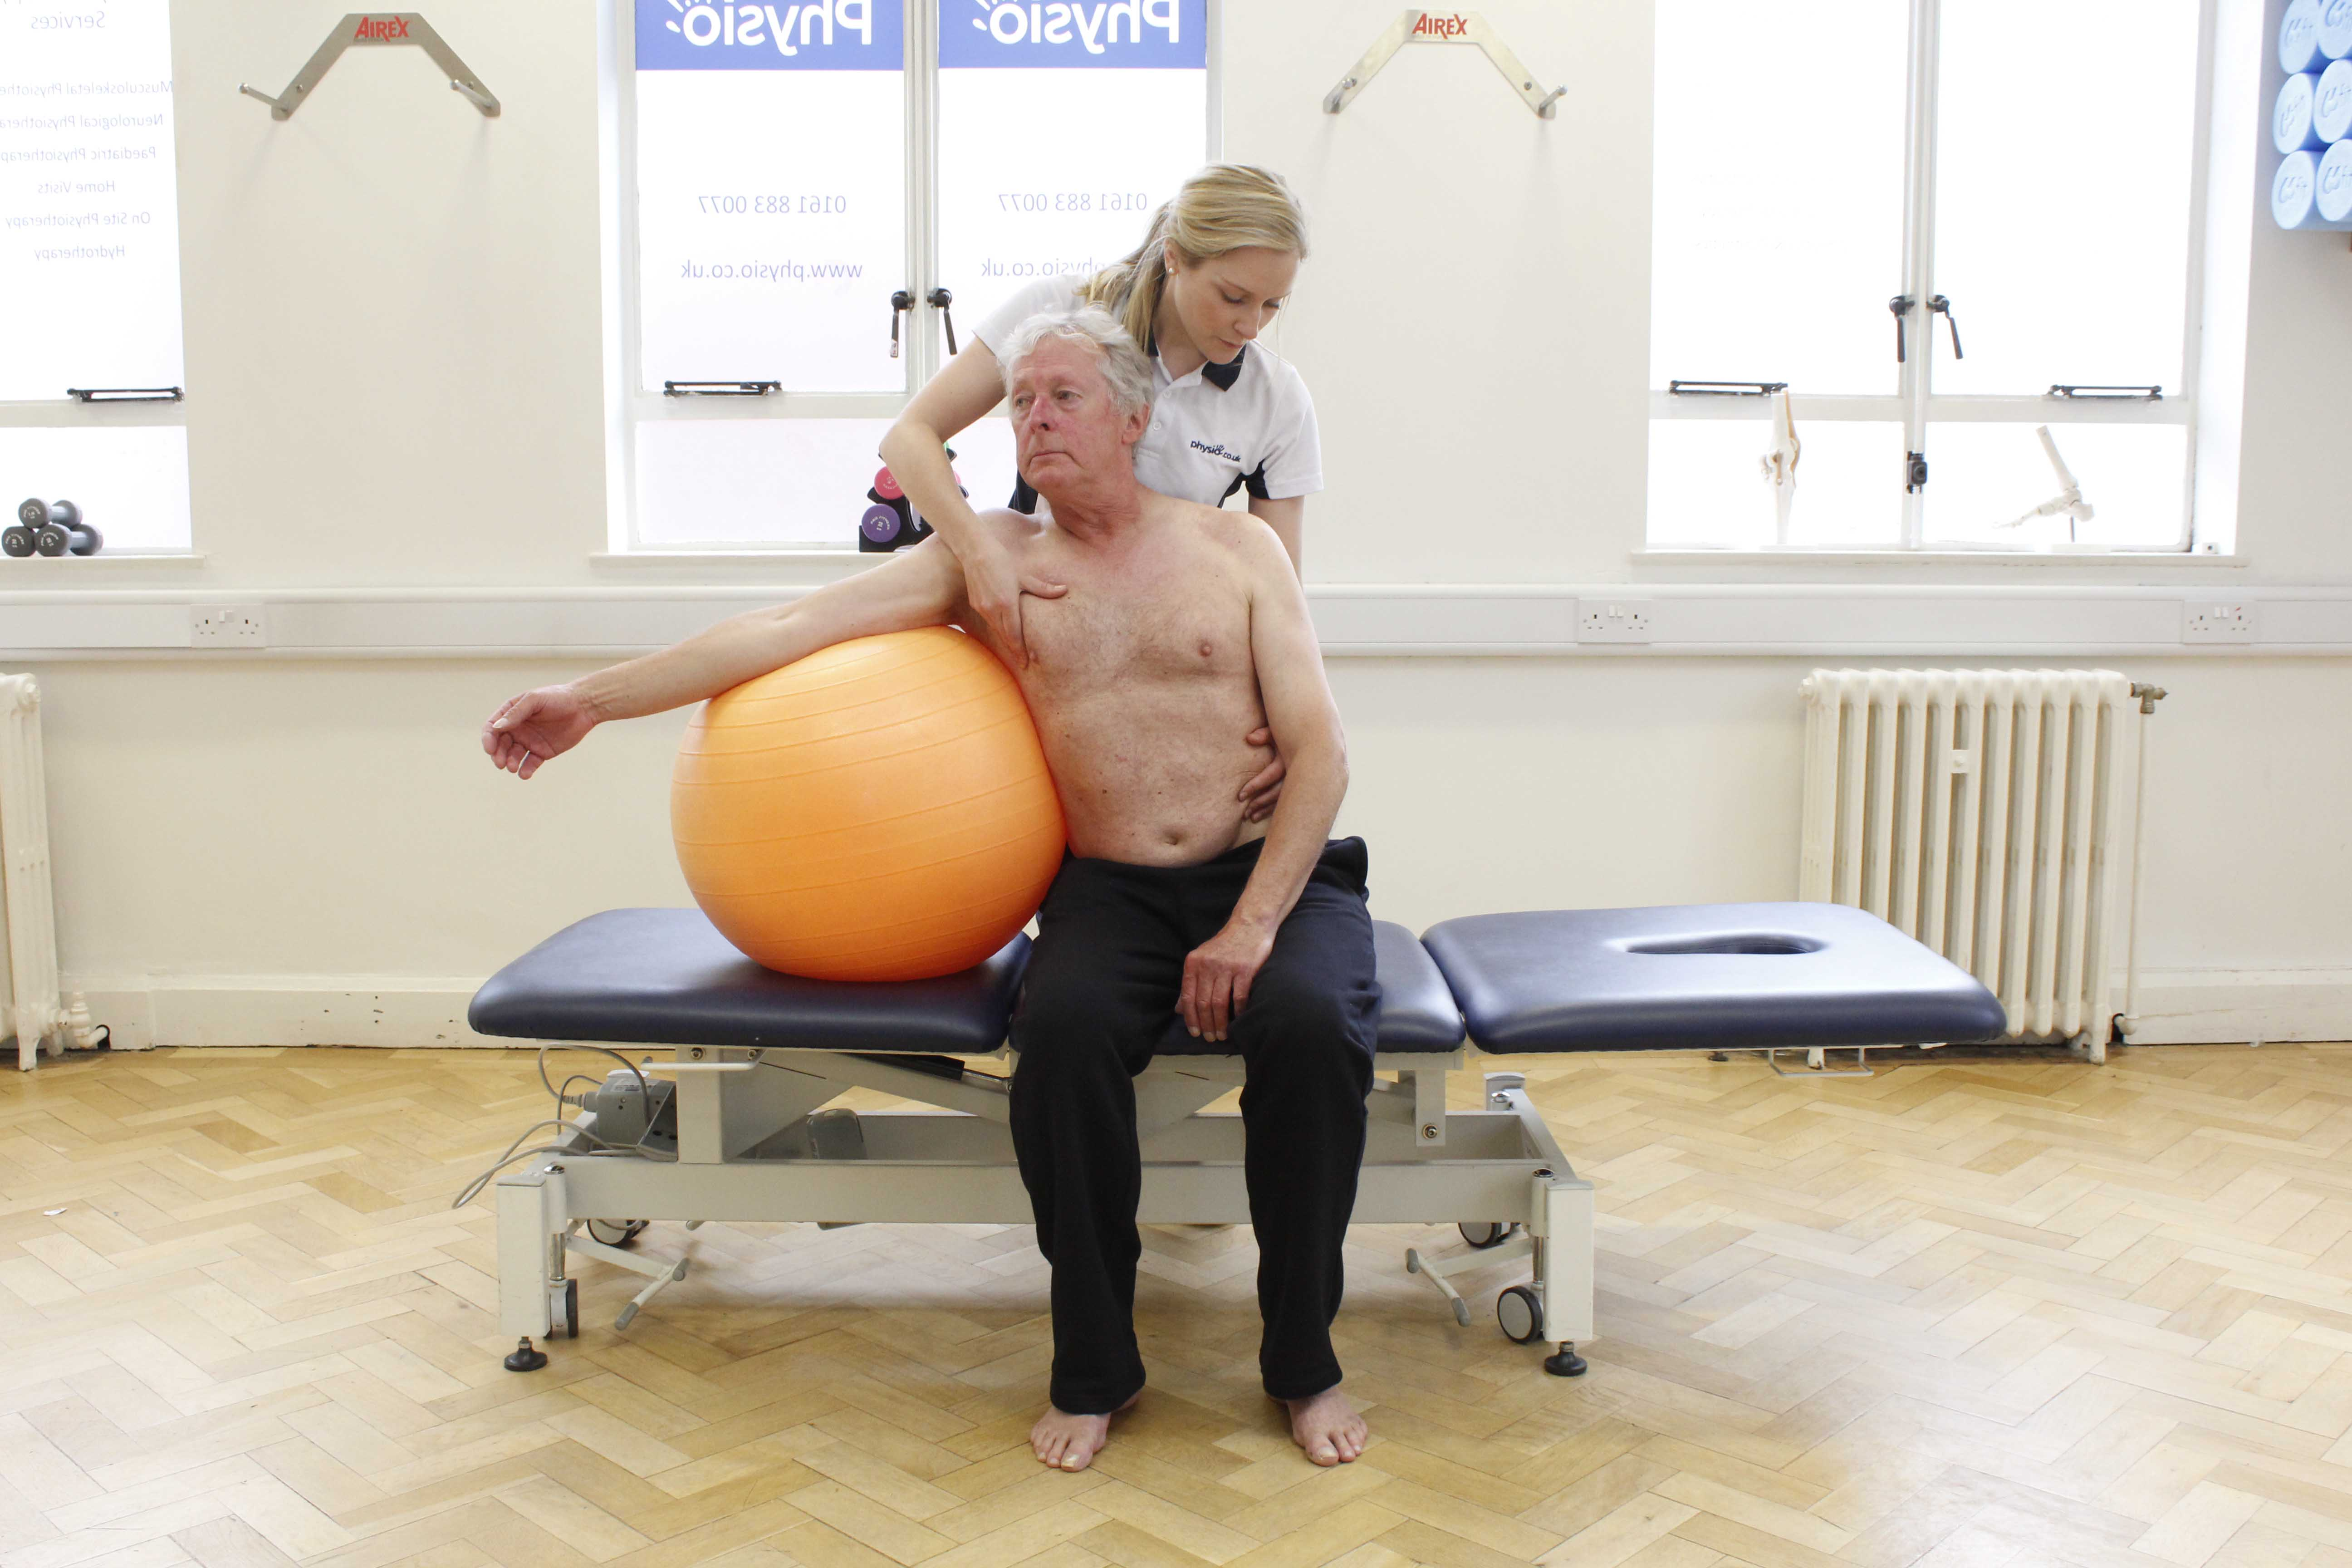 Mobilisation and stretch exercises for the spine assisted by an experienced physiotherapist